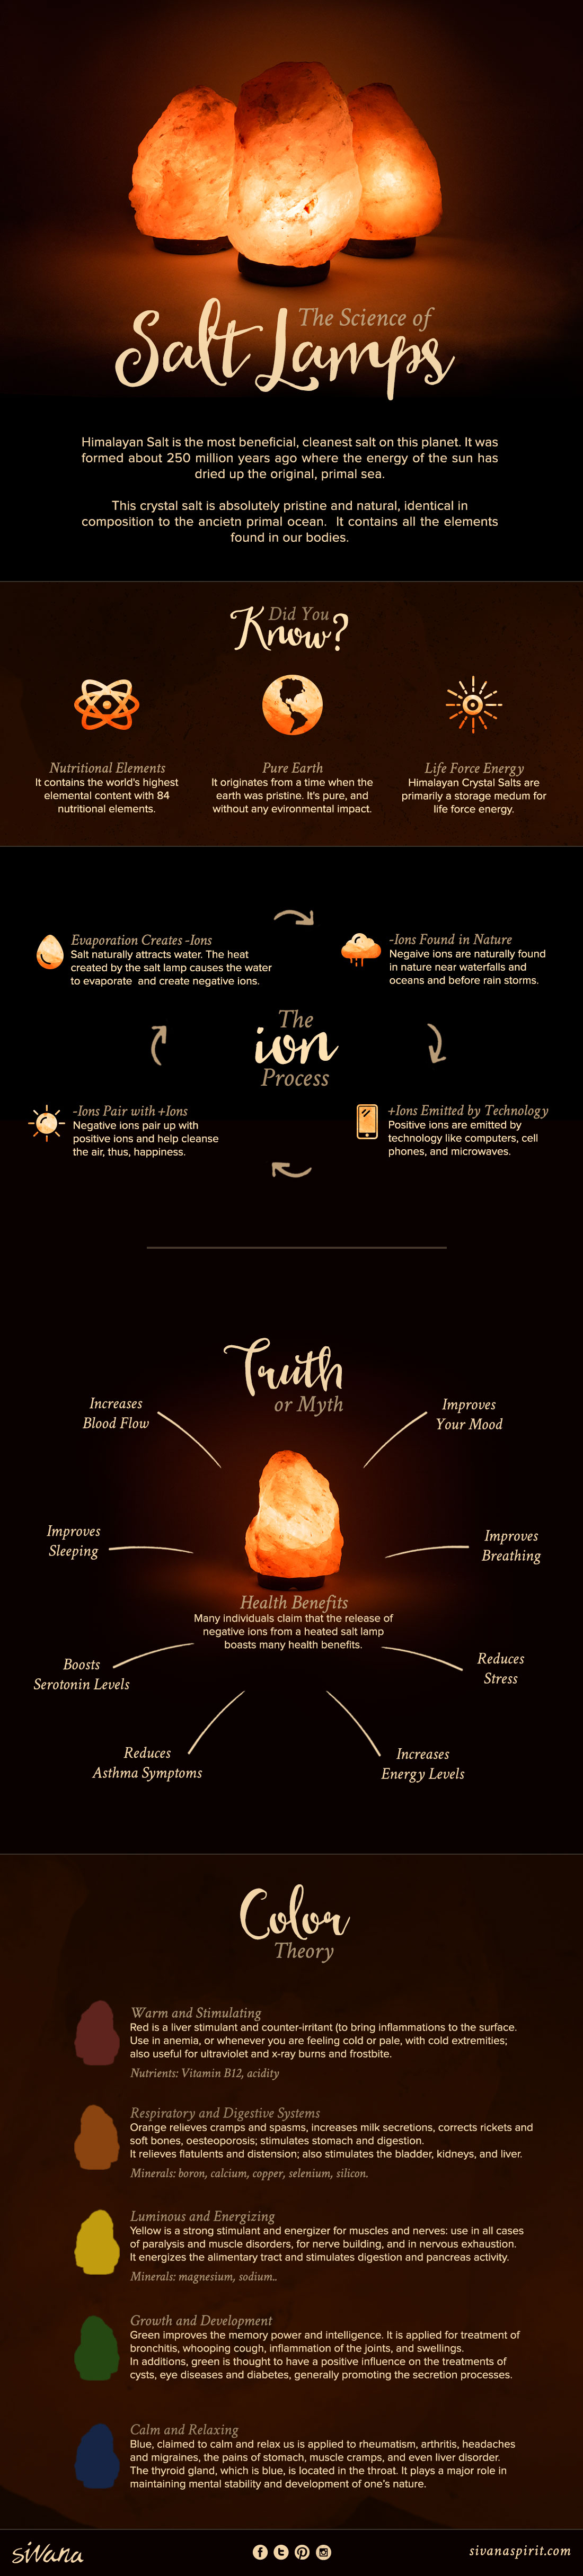 Sivana_Salt-Lamp_Infographic.jpg